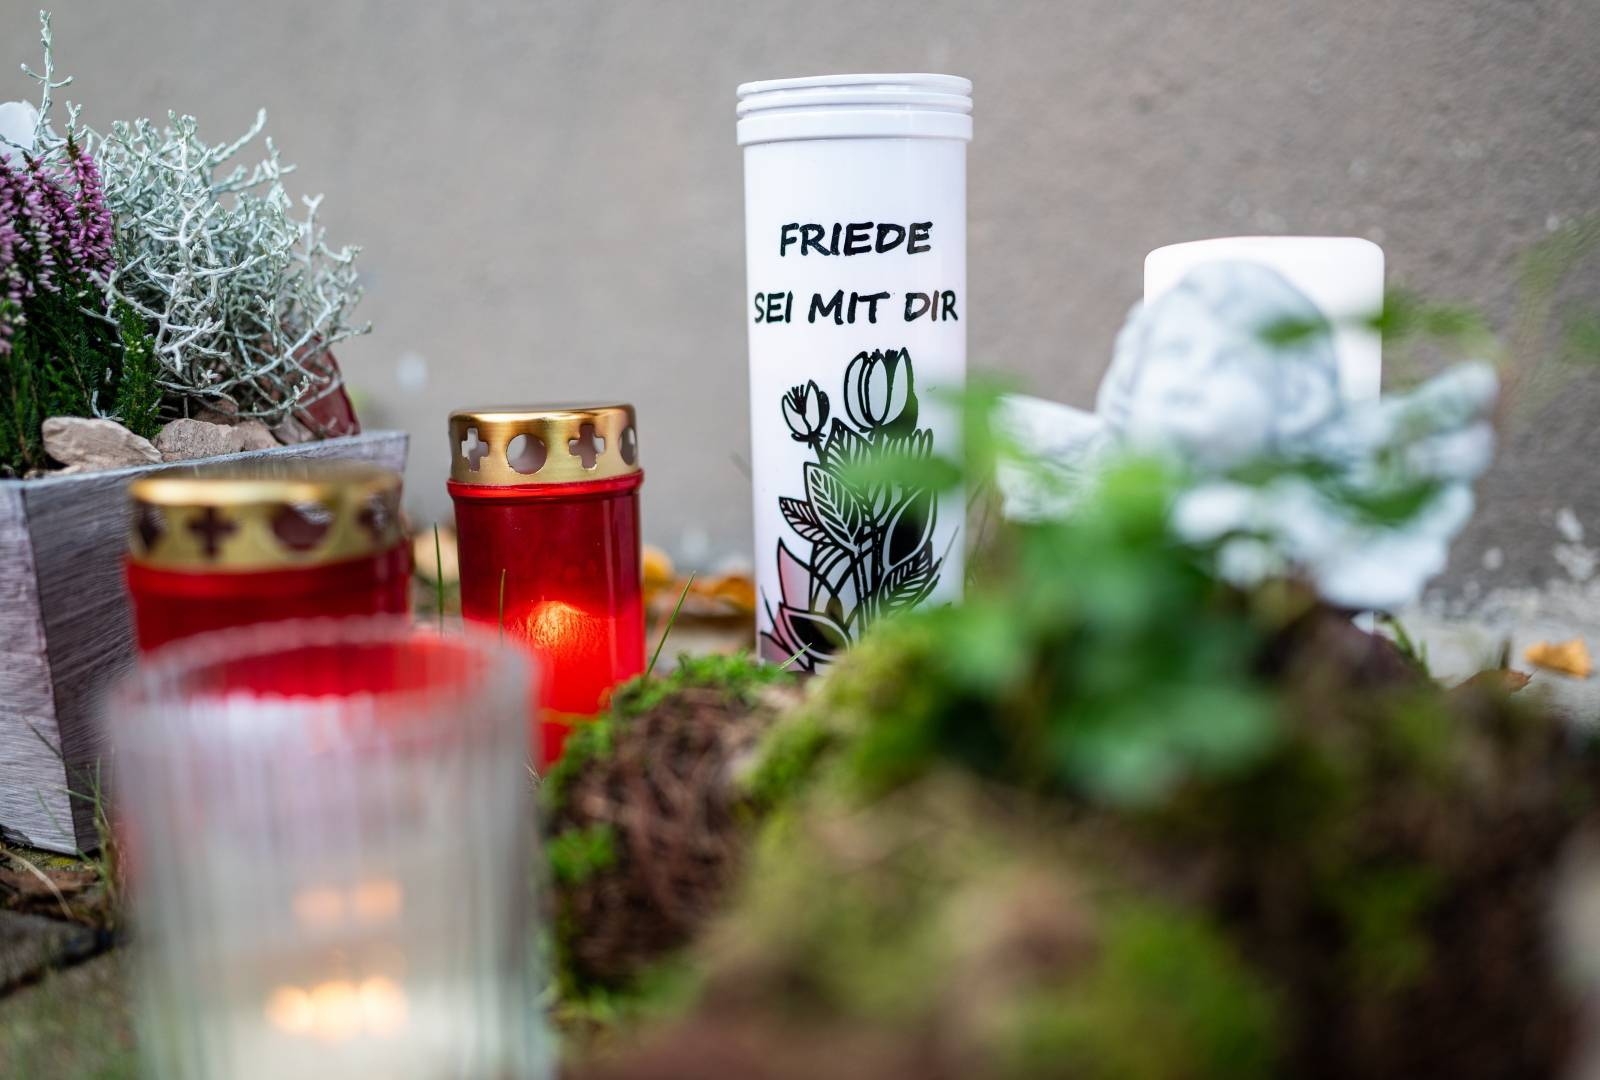 15-year-old alleged to have killed three-year-old half-brother in Detmold